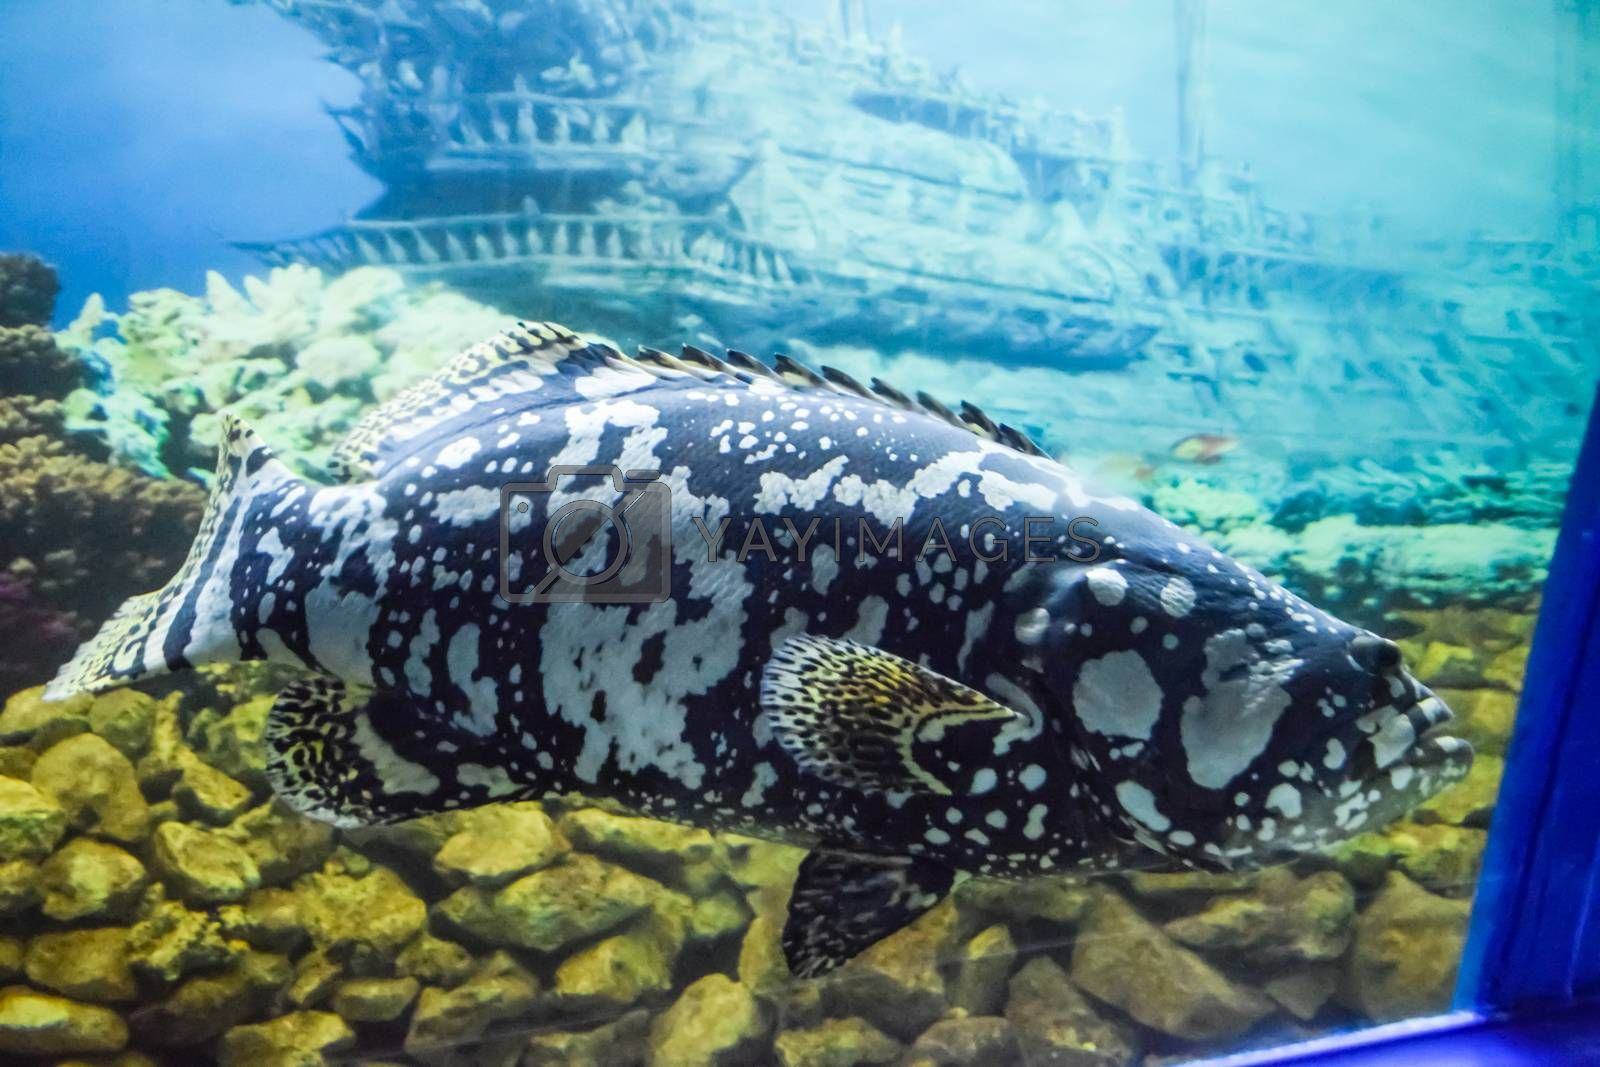 a Giant grouper Humpback grouperpanther grouper Humpback grouper